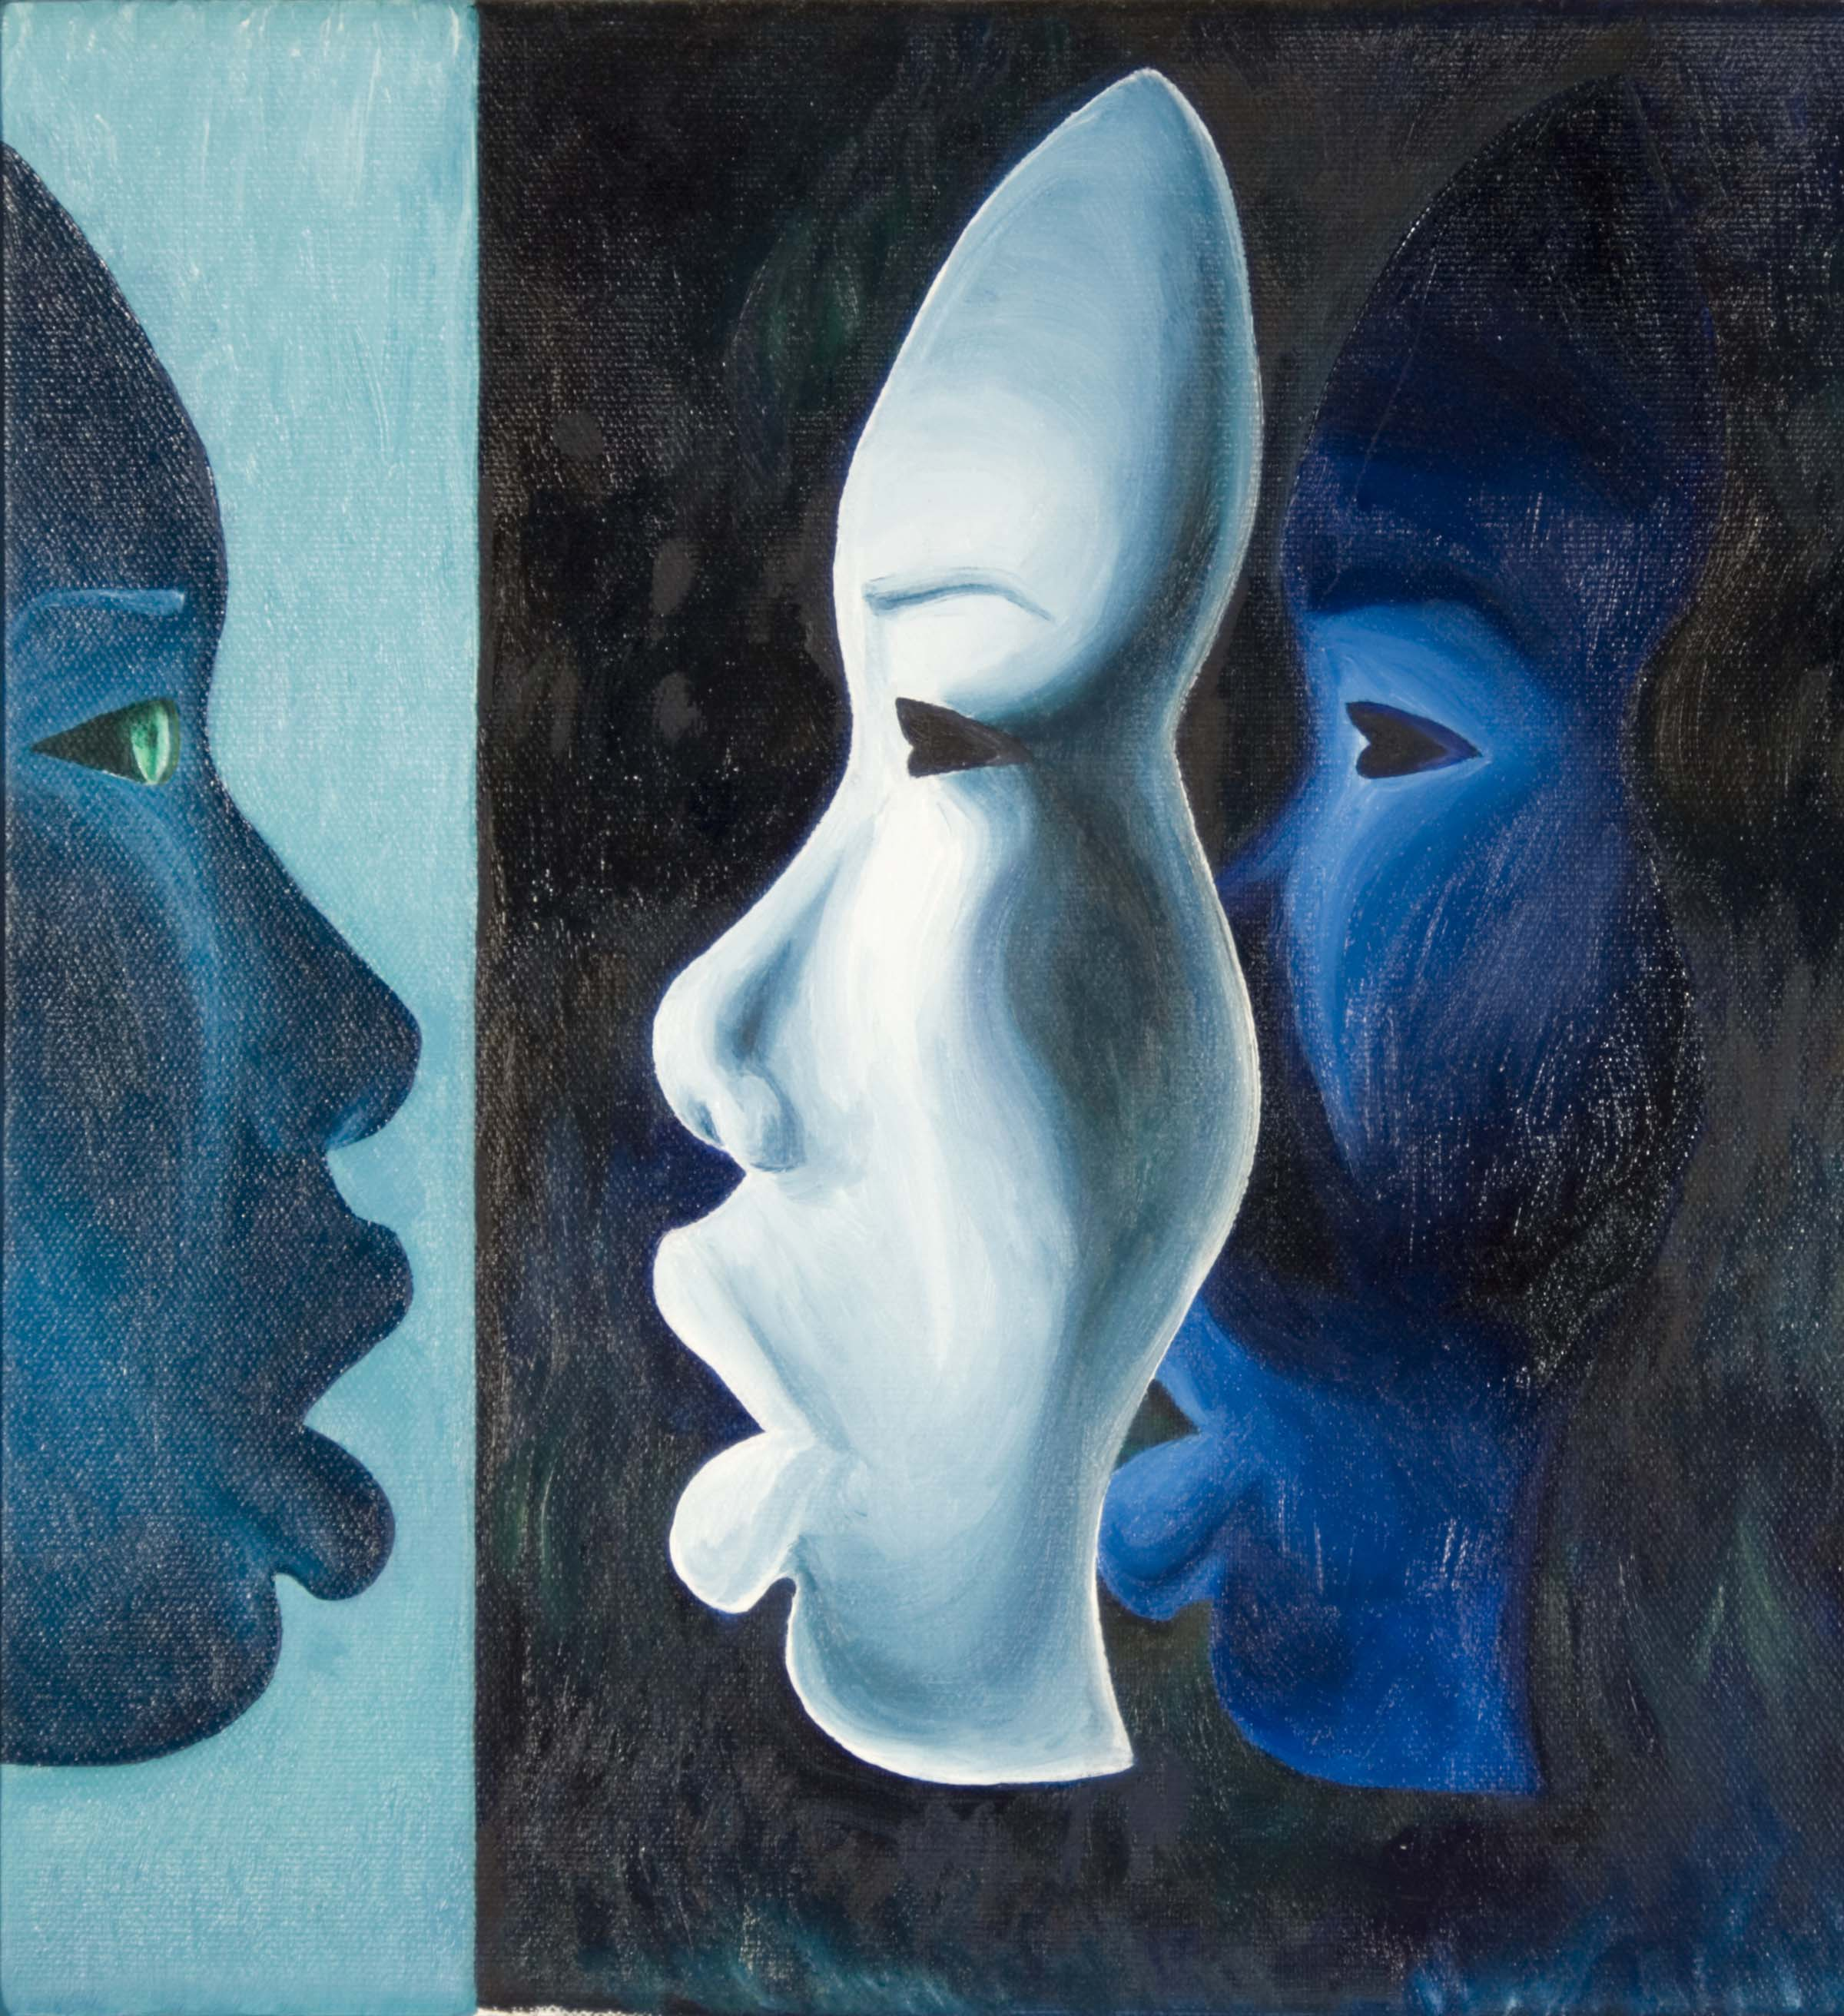 A painting of the silhouette of a face looking at two stacked masks in its likeness. The title and piece are inspired by Aubrie's diagnosis of infantile-onset facioscapulohumeral muscular dystrophy.